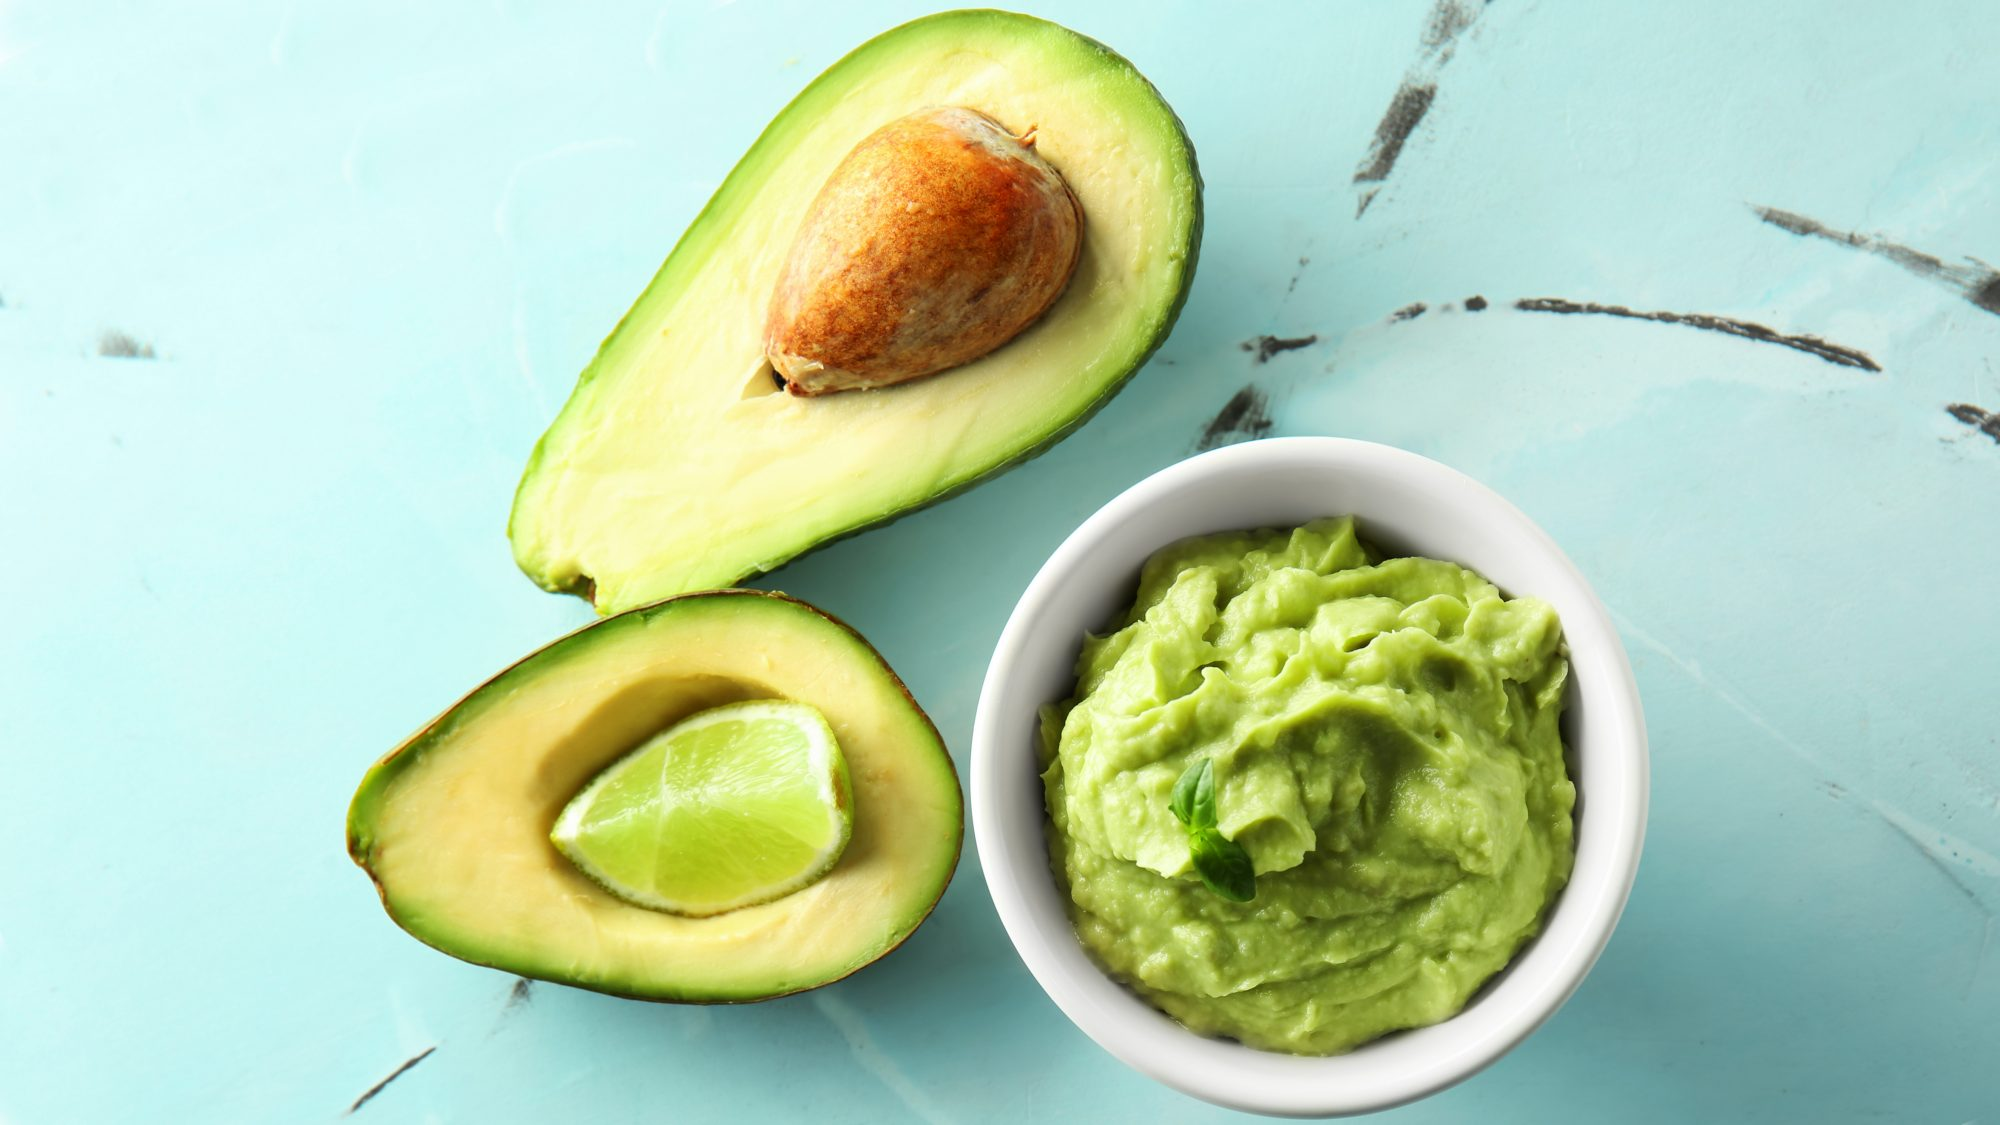 avocado-mistakes: sliced avocado and guacamole